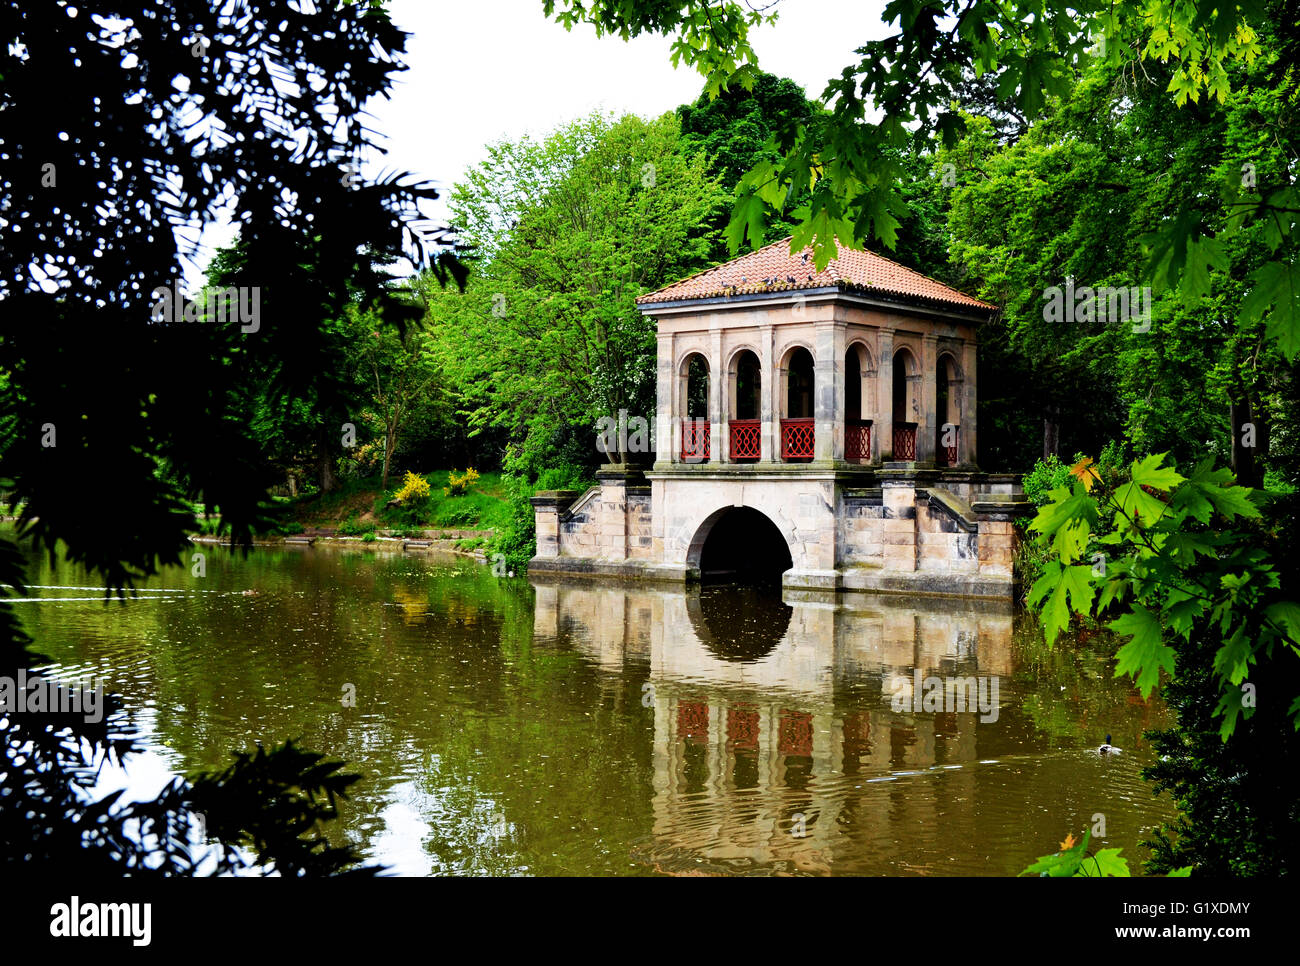 The iconic Boathouse in Birkenhead Park, Wirral, UK - Stock Image